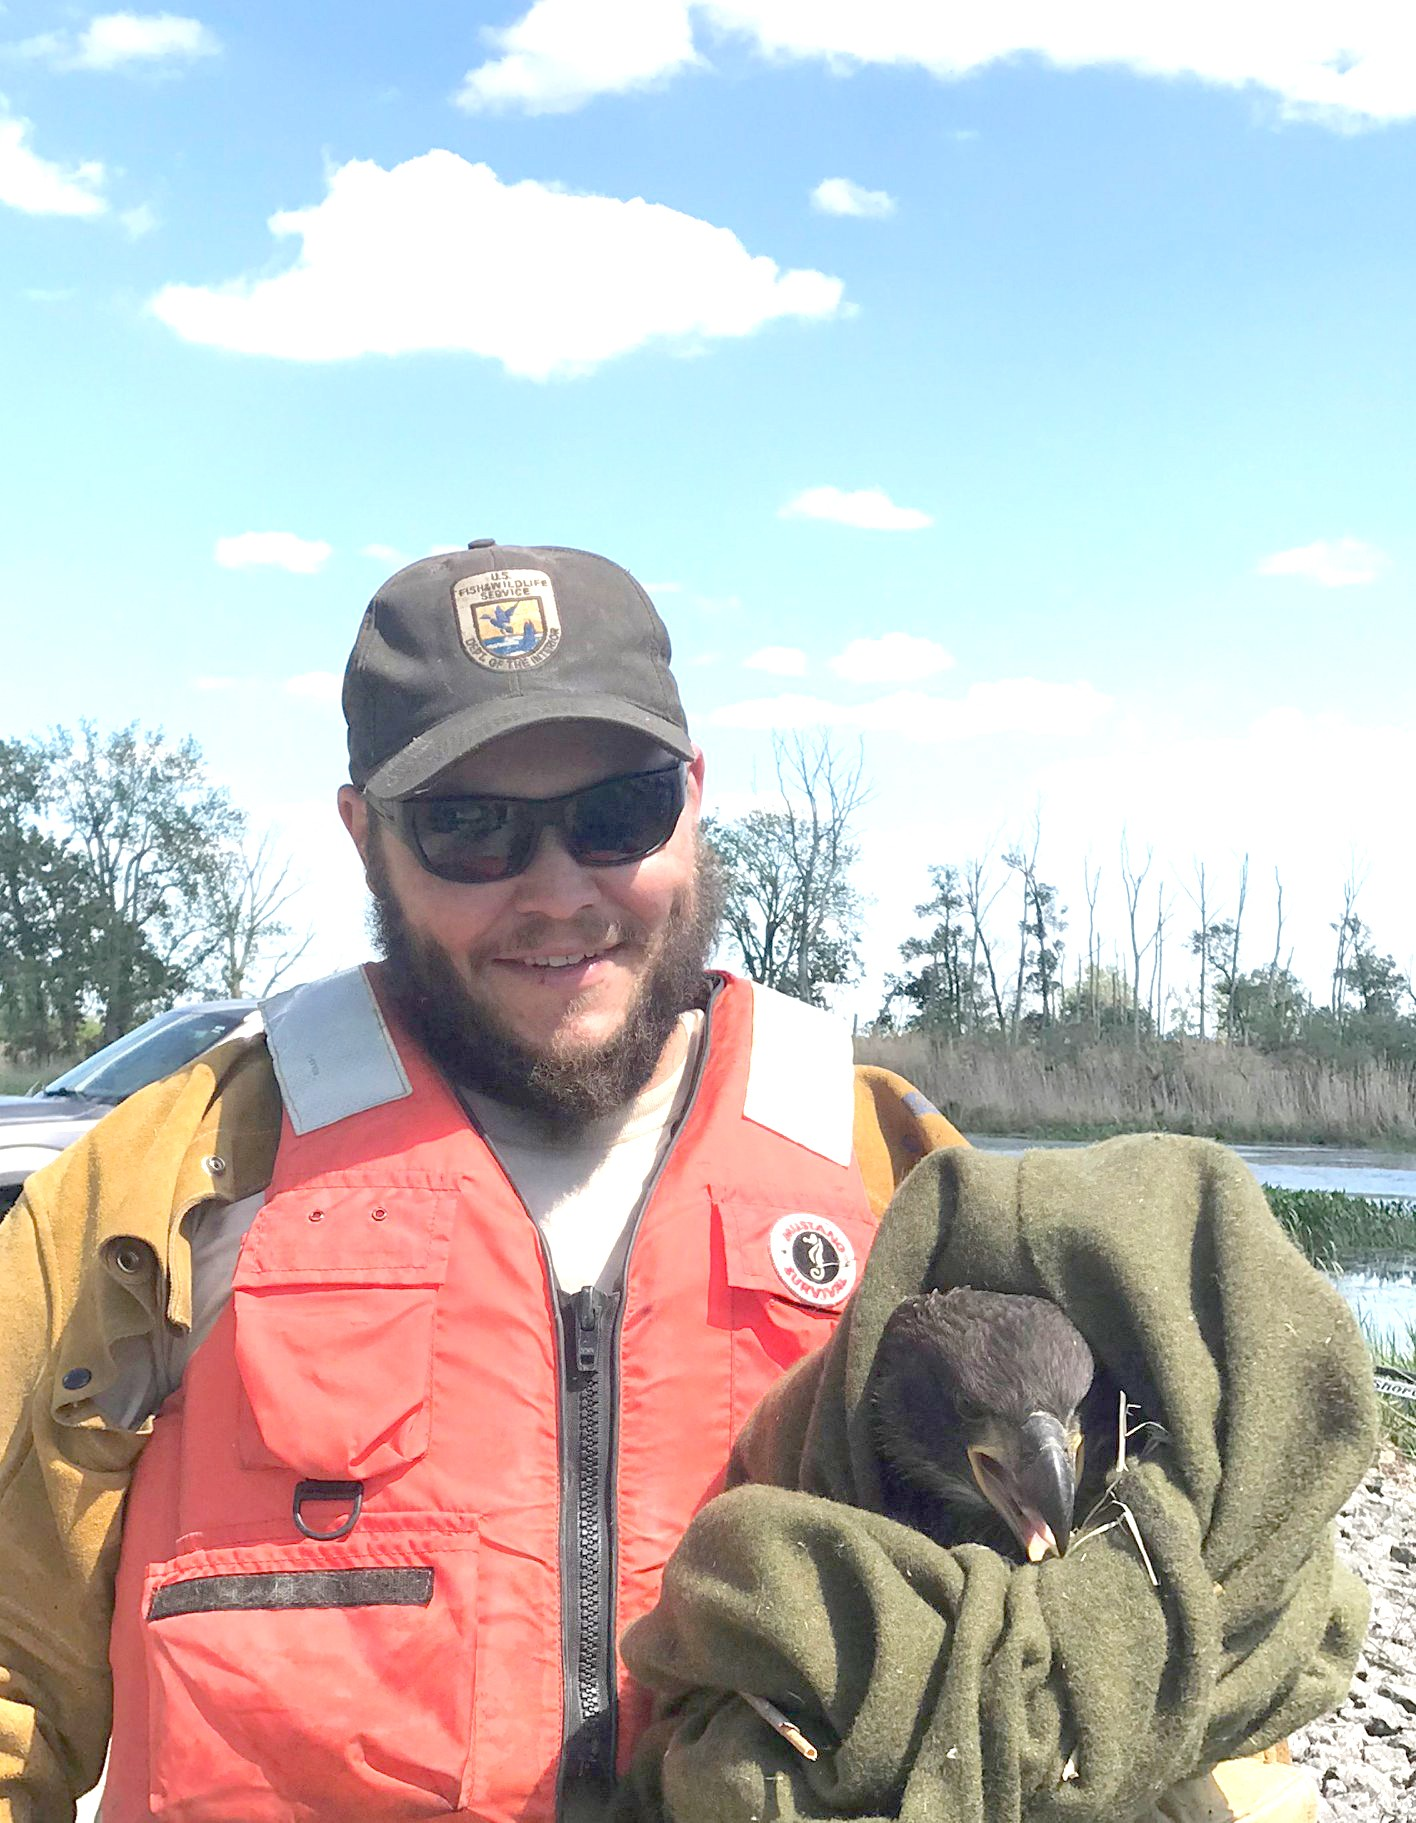 Ottawa National Wildlife Refuge maintenance worker Ramsay Houze with a rescued eagle chick in June 2020. The eagle's nest blew down in a thunderstorm and three chicks were rescued, rehabilitated by Back to the Wild and released back on the refuge. (Photo by USFWS)